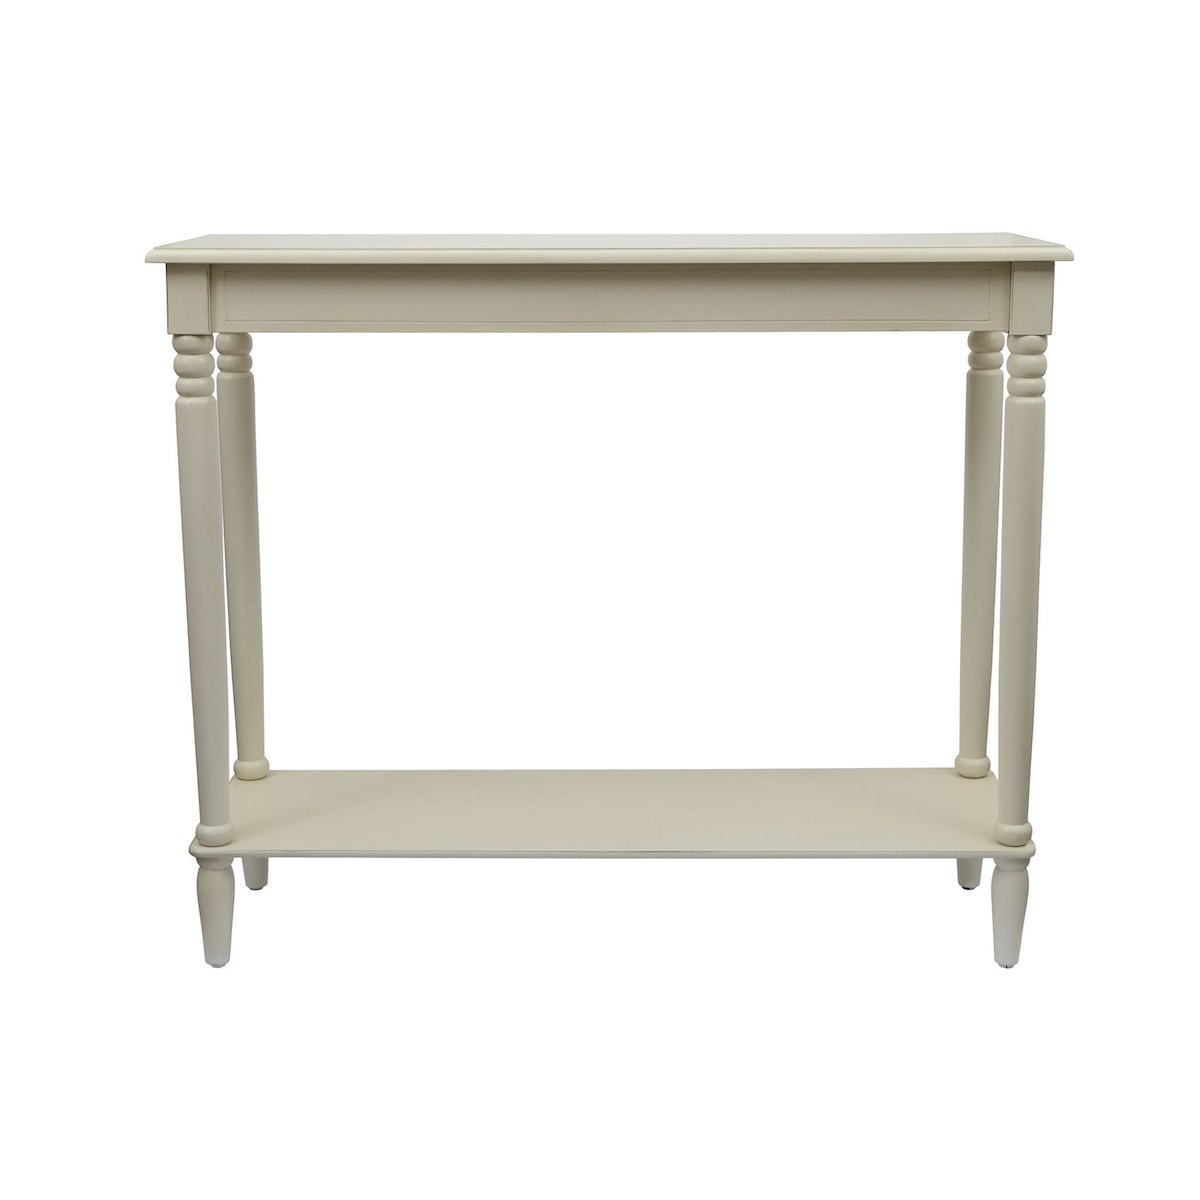 Décor Therapy FR1577 Simplify Console Table, Large, Antique White